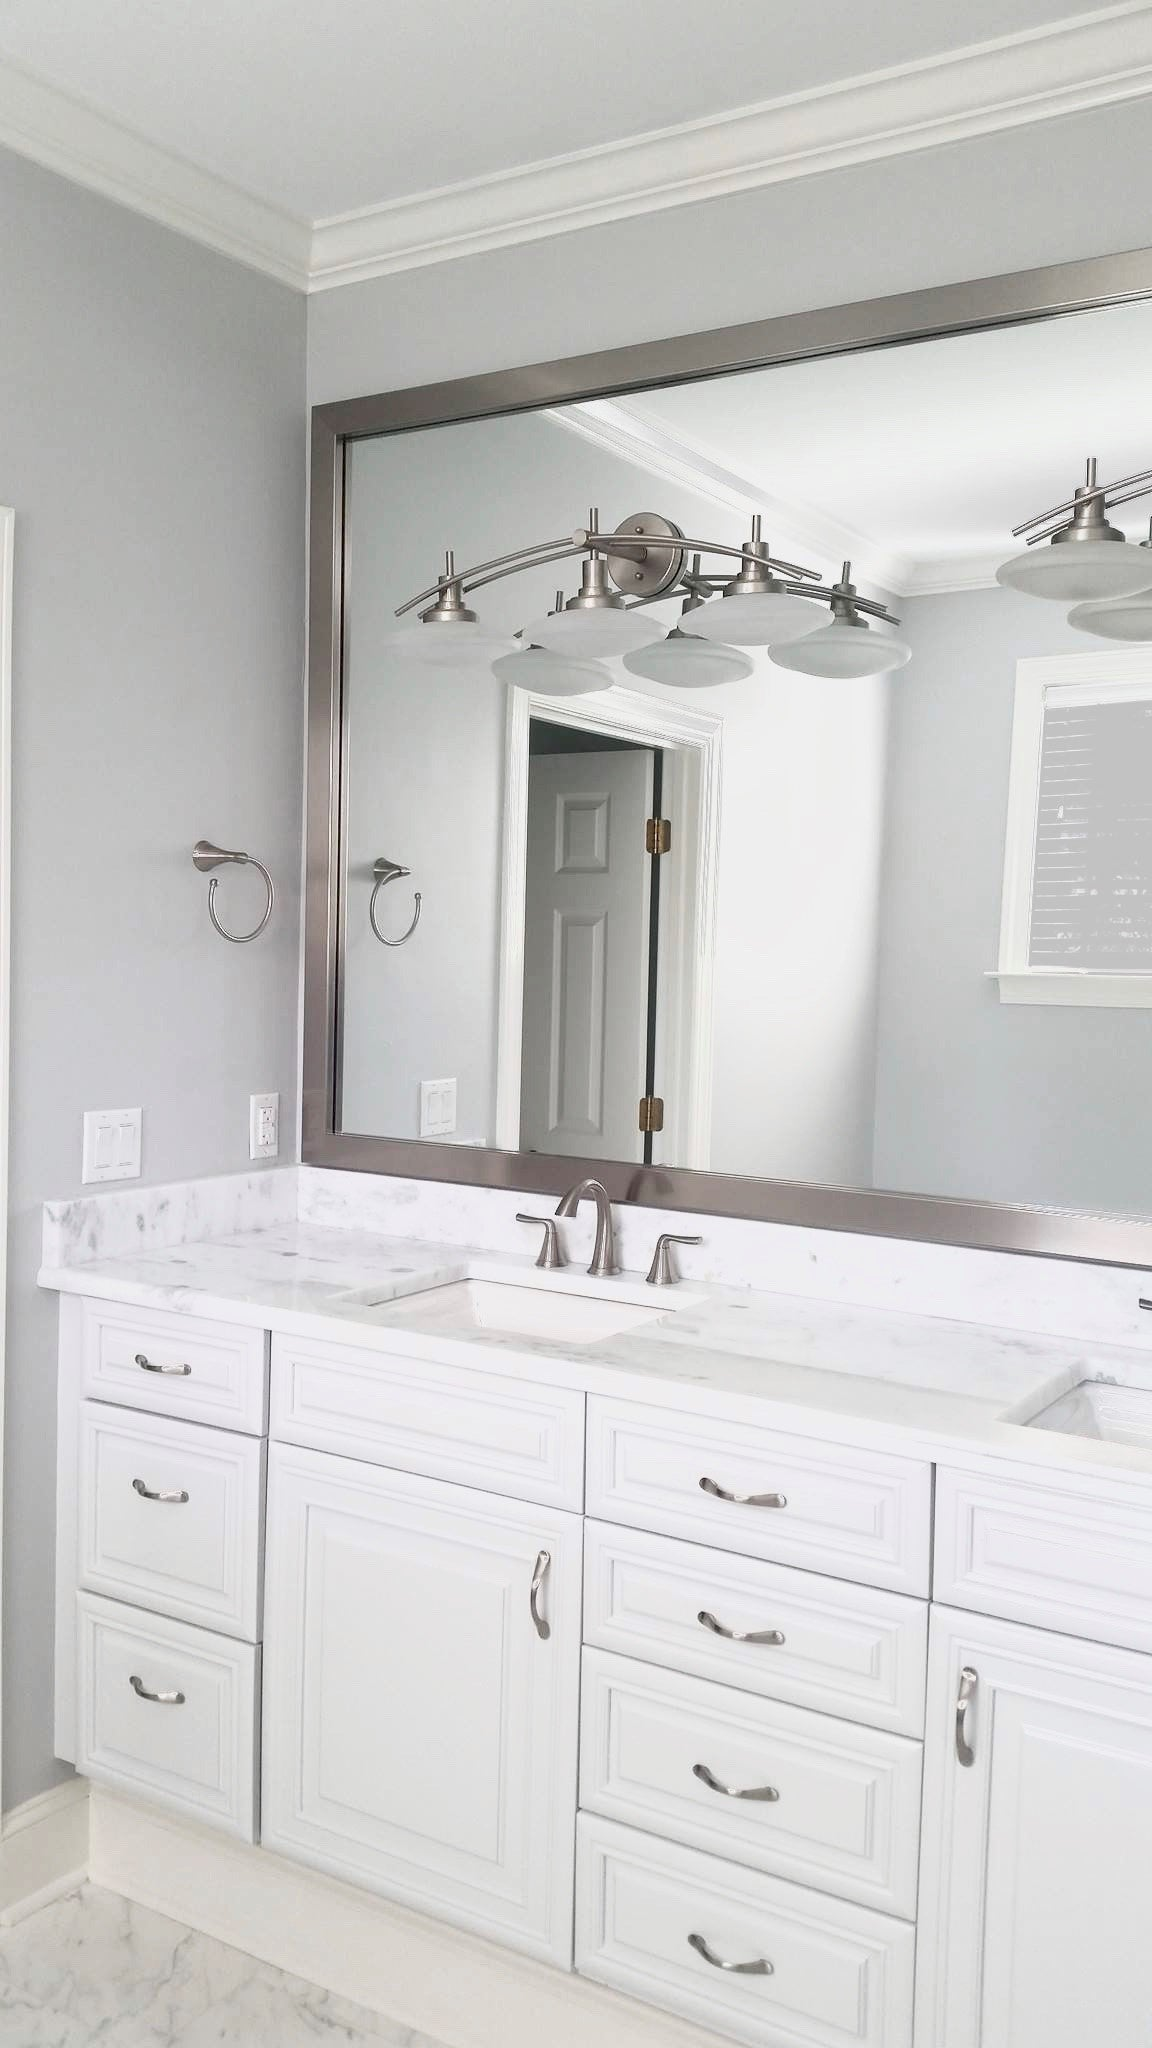 Bathroom Makeover With Wall-Mounted Mirror Frame